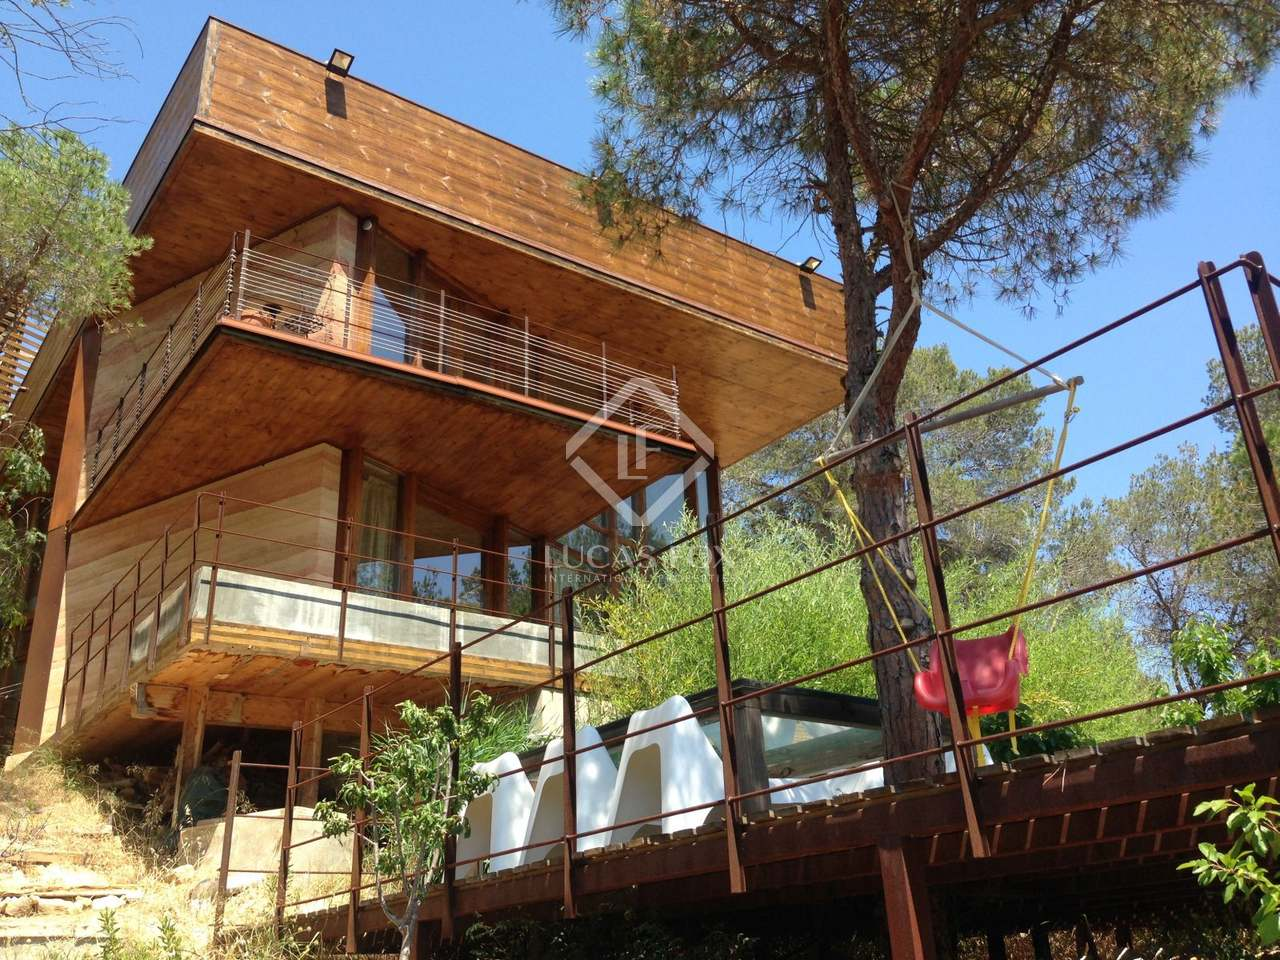 3 storey eco home for sale in olivella near sitges for Eco houses for sale